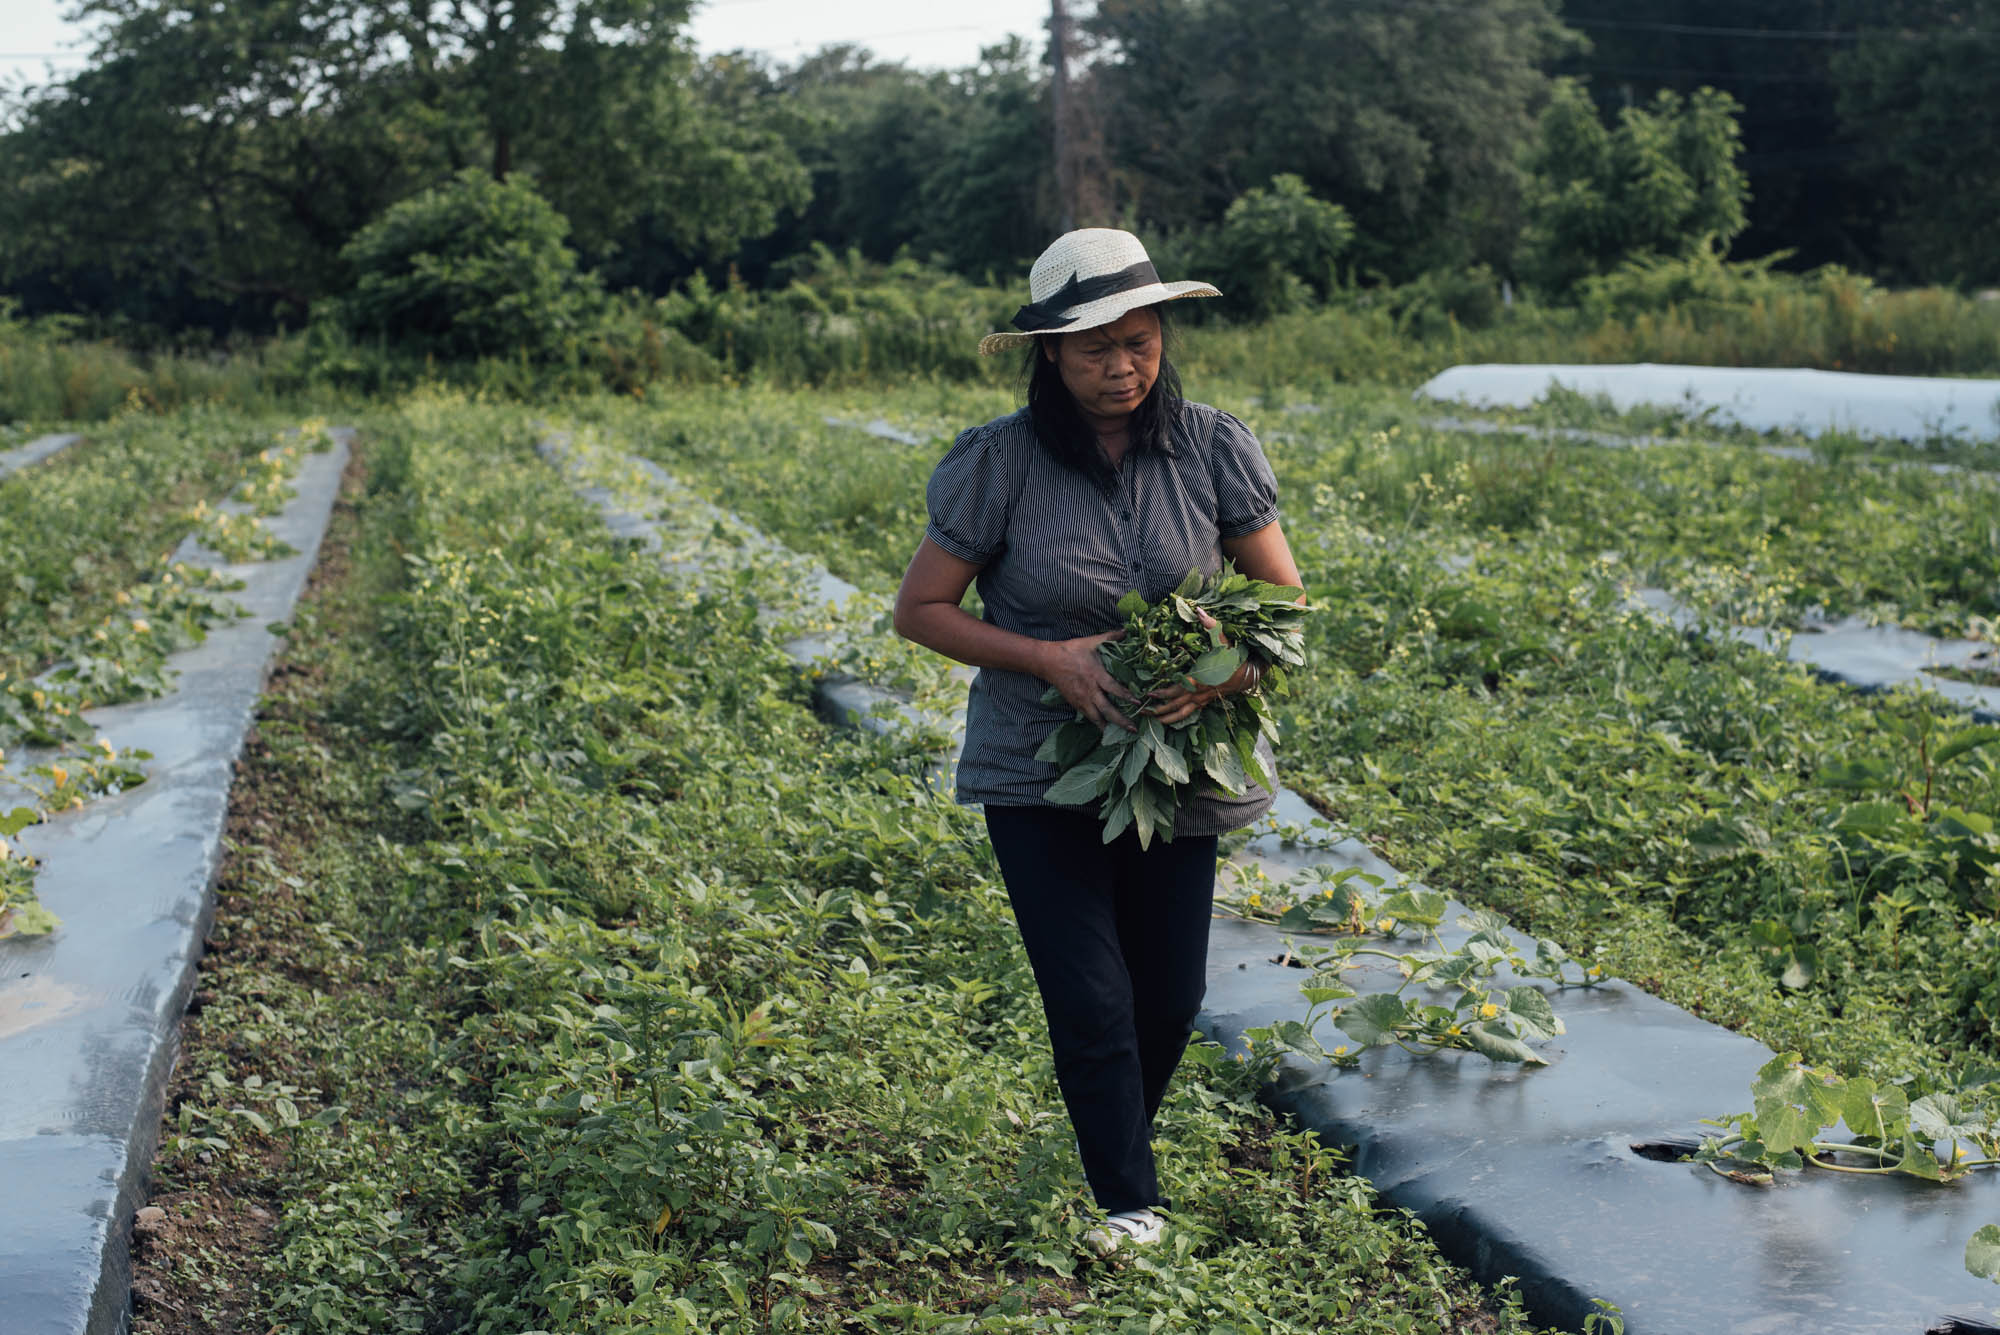 Saroeup Voeul picks wild amaranth leaves at Movement Ground Farm in Tiverton, Rhode Island. She recognizes the leaves from her childhood in Cambodia. Photo by Ash Ngu.